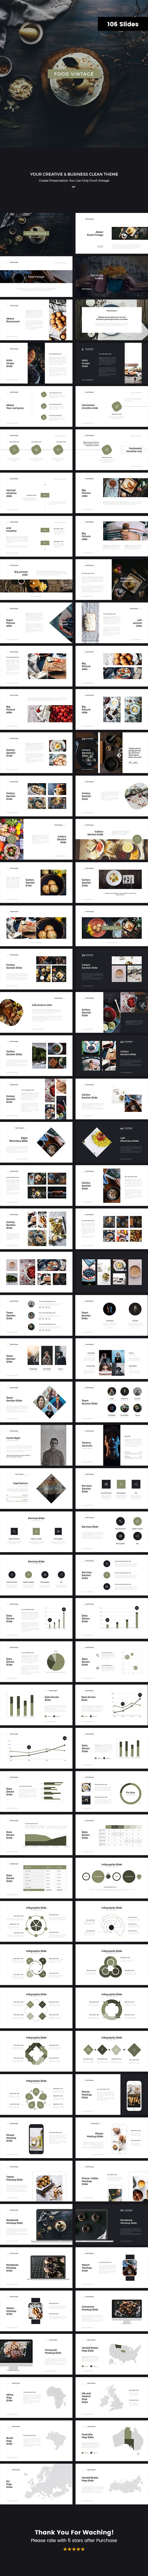 Food Vintage 3 Powerpoint Template - Creative PowerPoint Templates